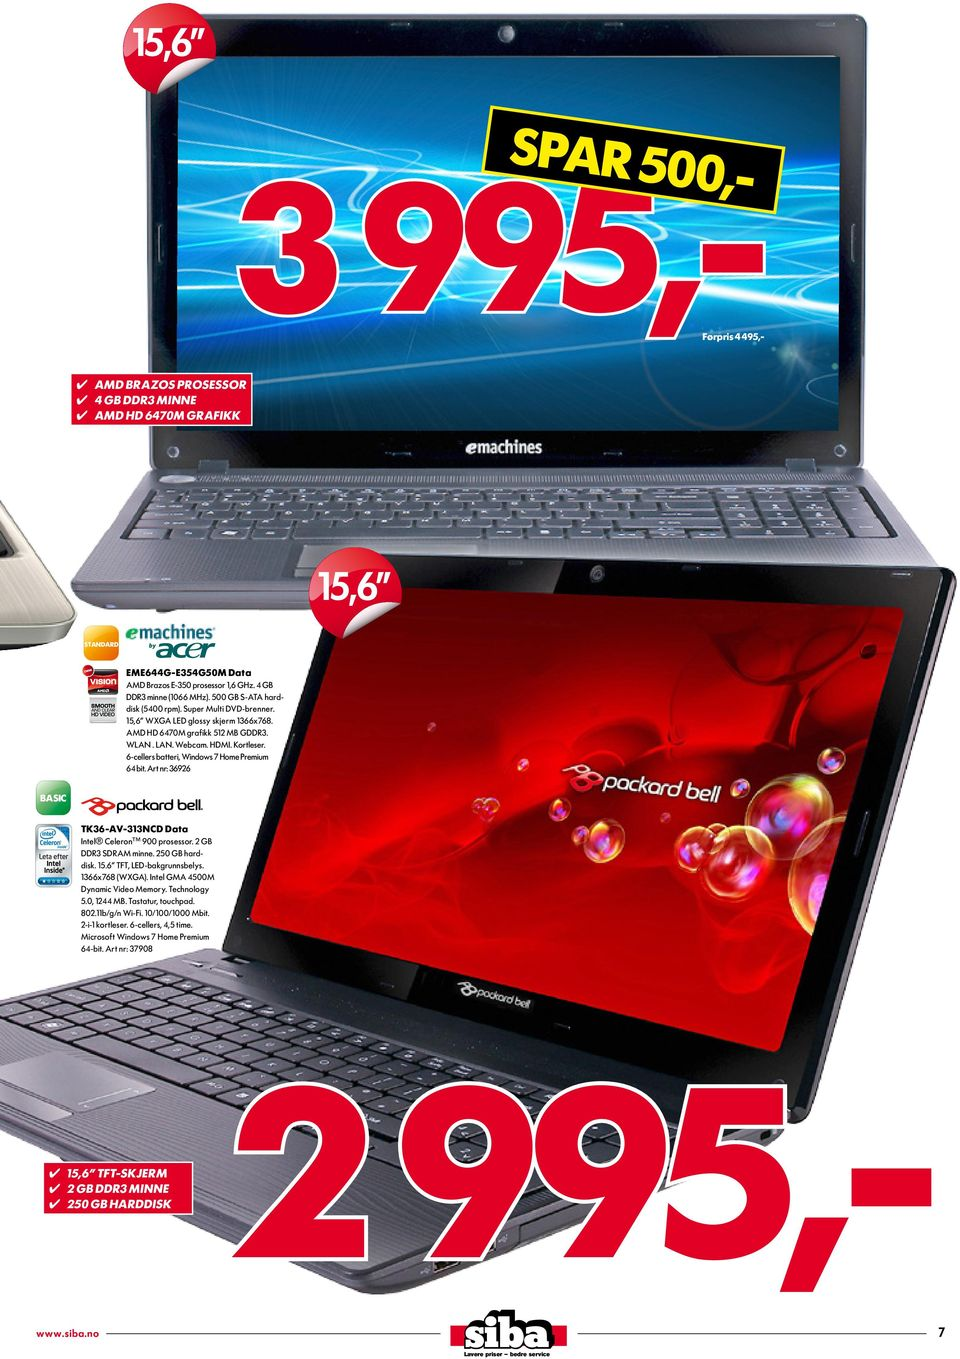 "6-cellers batteri, Windows 7 Home Premium 64 bit. Art nr: 36926 BASIC TK36-AV-313NCD Data Intel Celeron 900 prosessor. 2 GB DDR3 SDRAM minne. 250 GB harddisk. 15.6"" TFT, LED-bakgrunnsbelys."